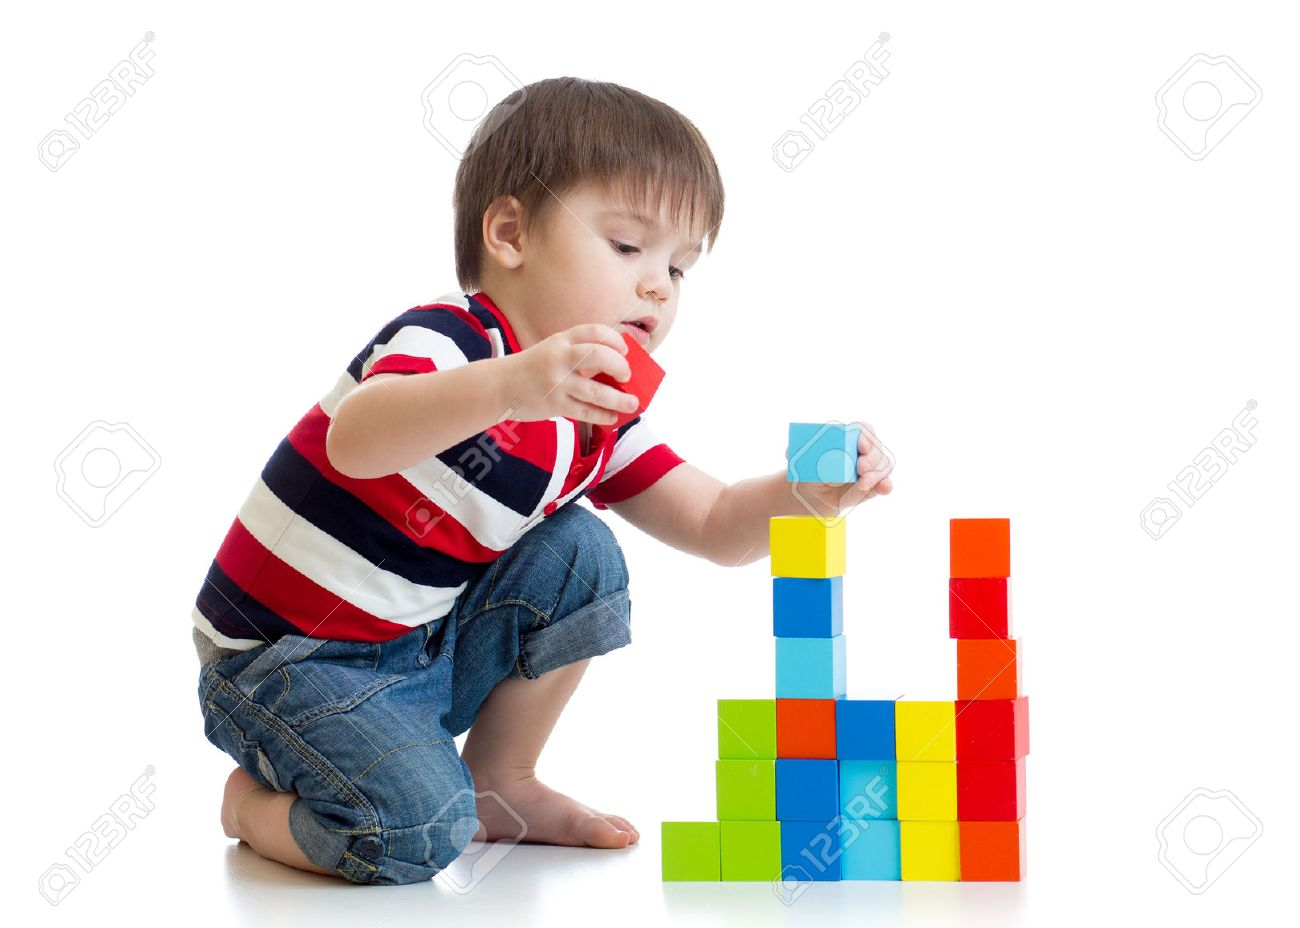 kid child boy playing with color cubes toys on floor isolated Stock Photo - 52013162